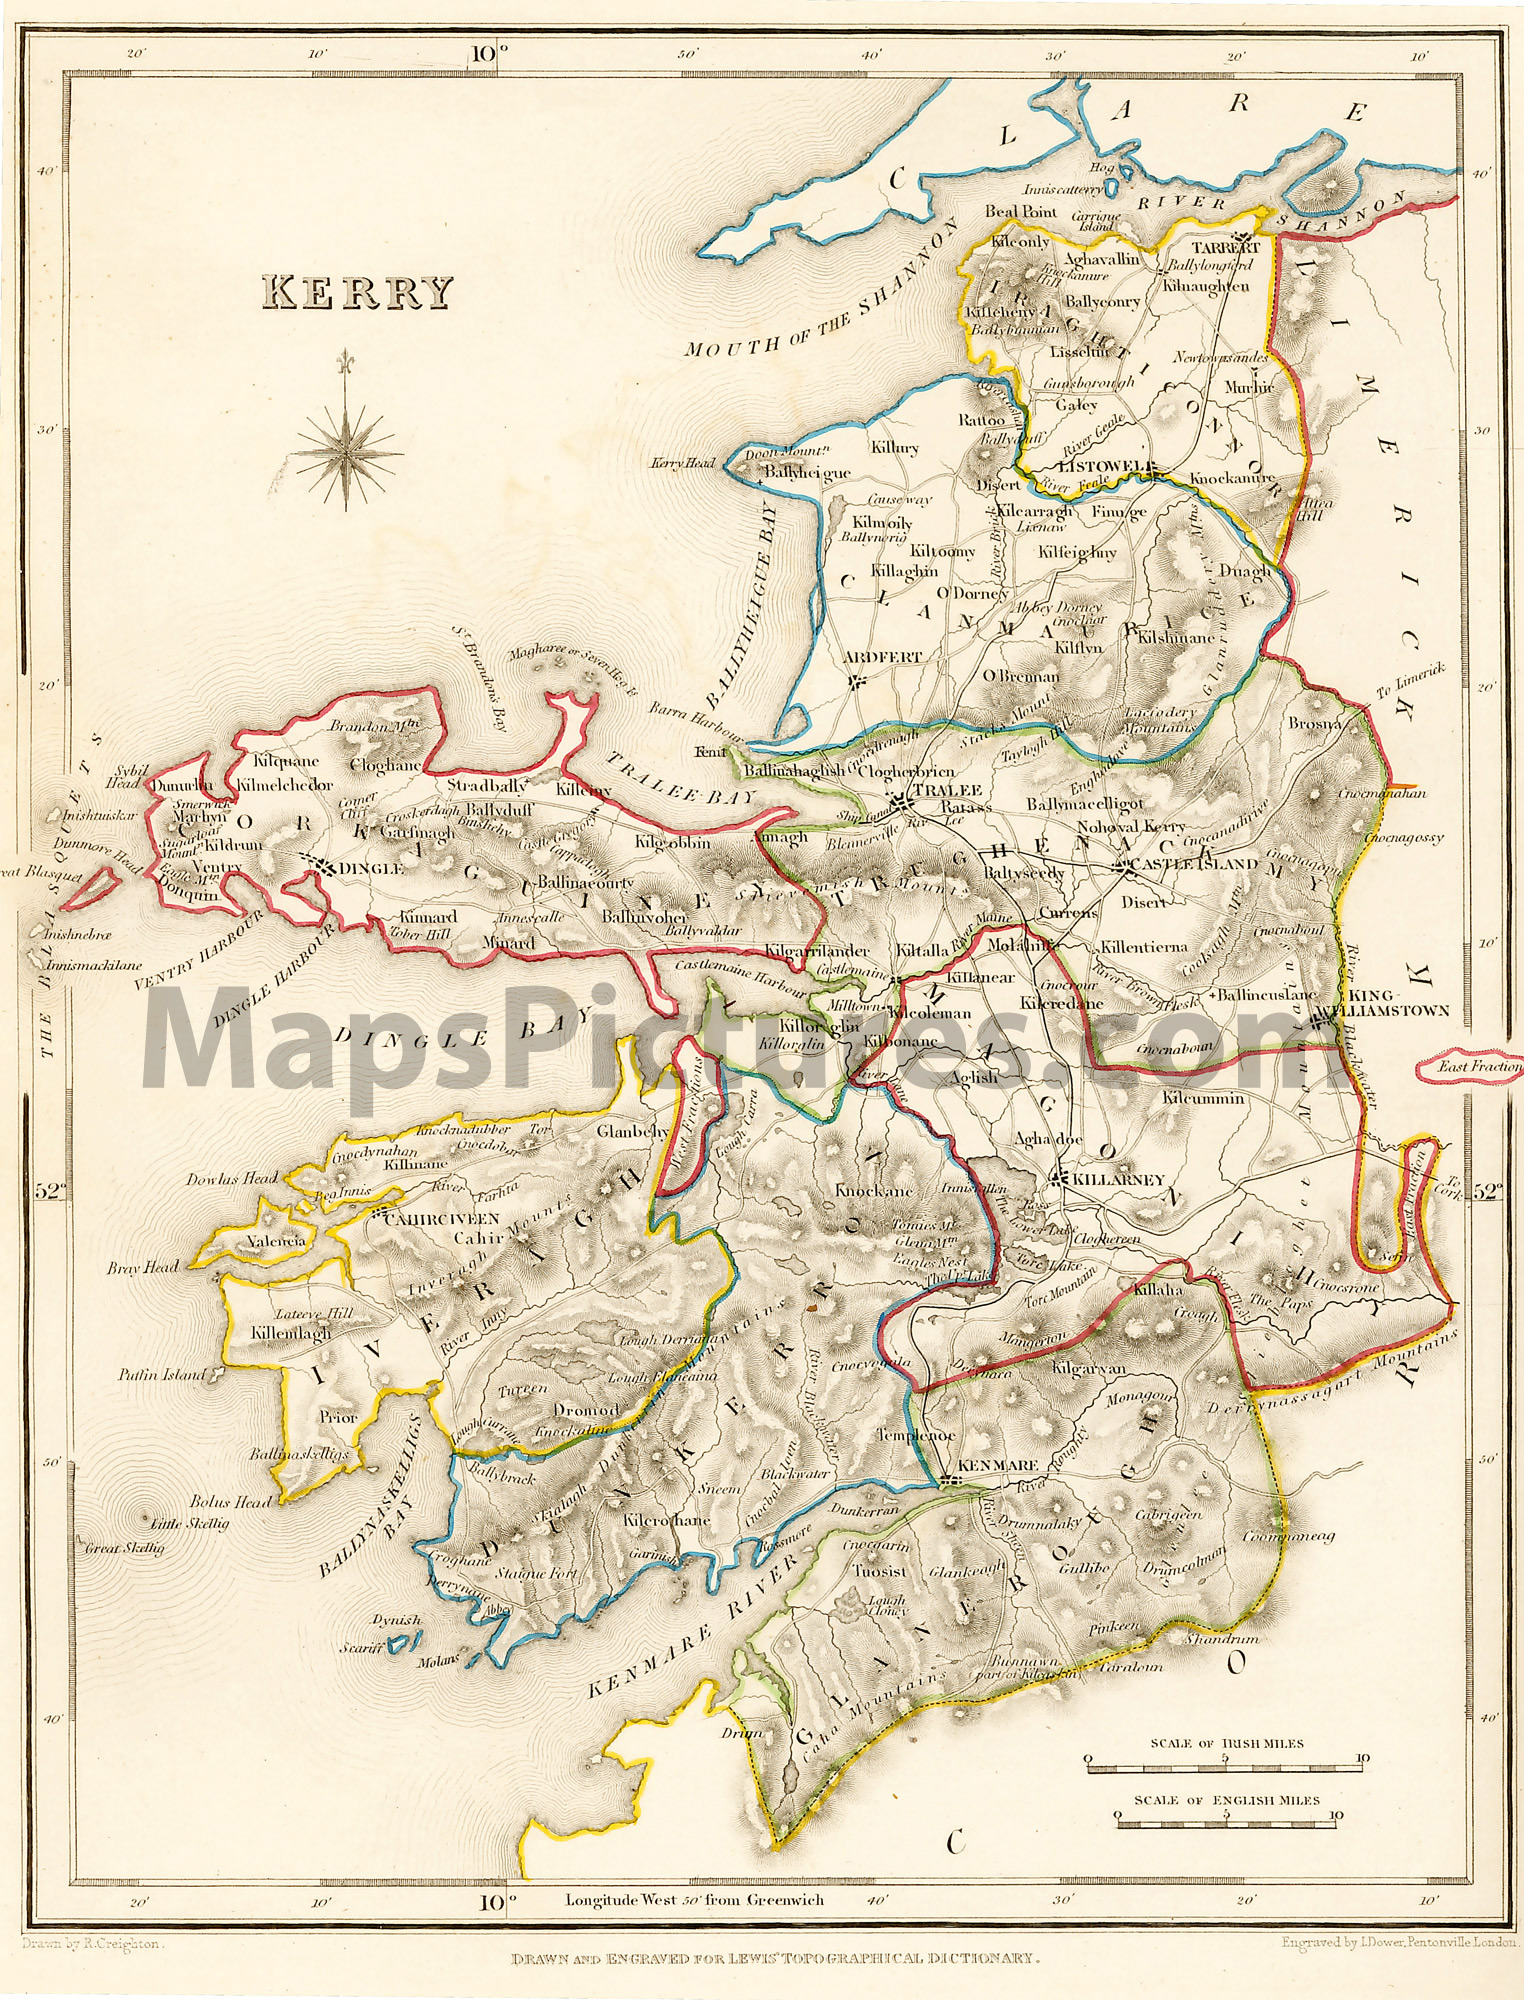 Road Map Of Ireland With Counties.Historic Maps All Island Ireland Map Collections At Ucd